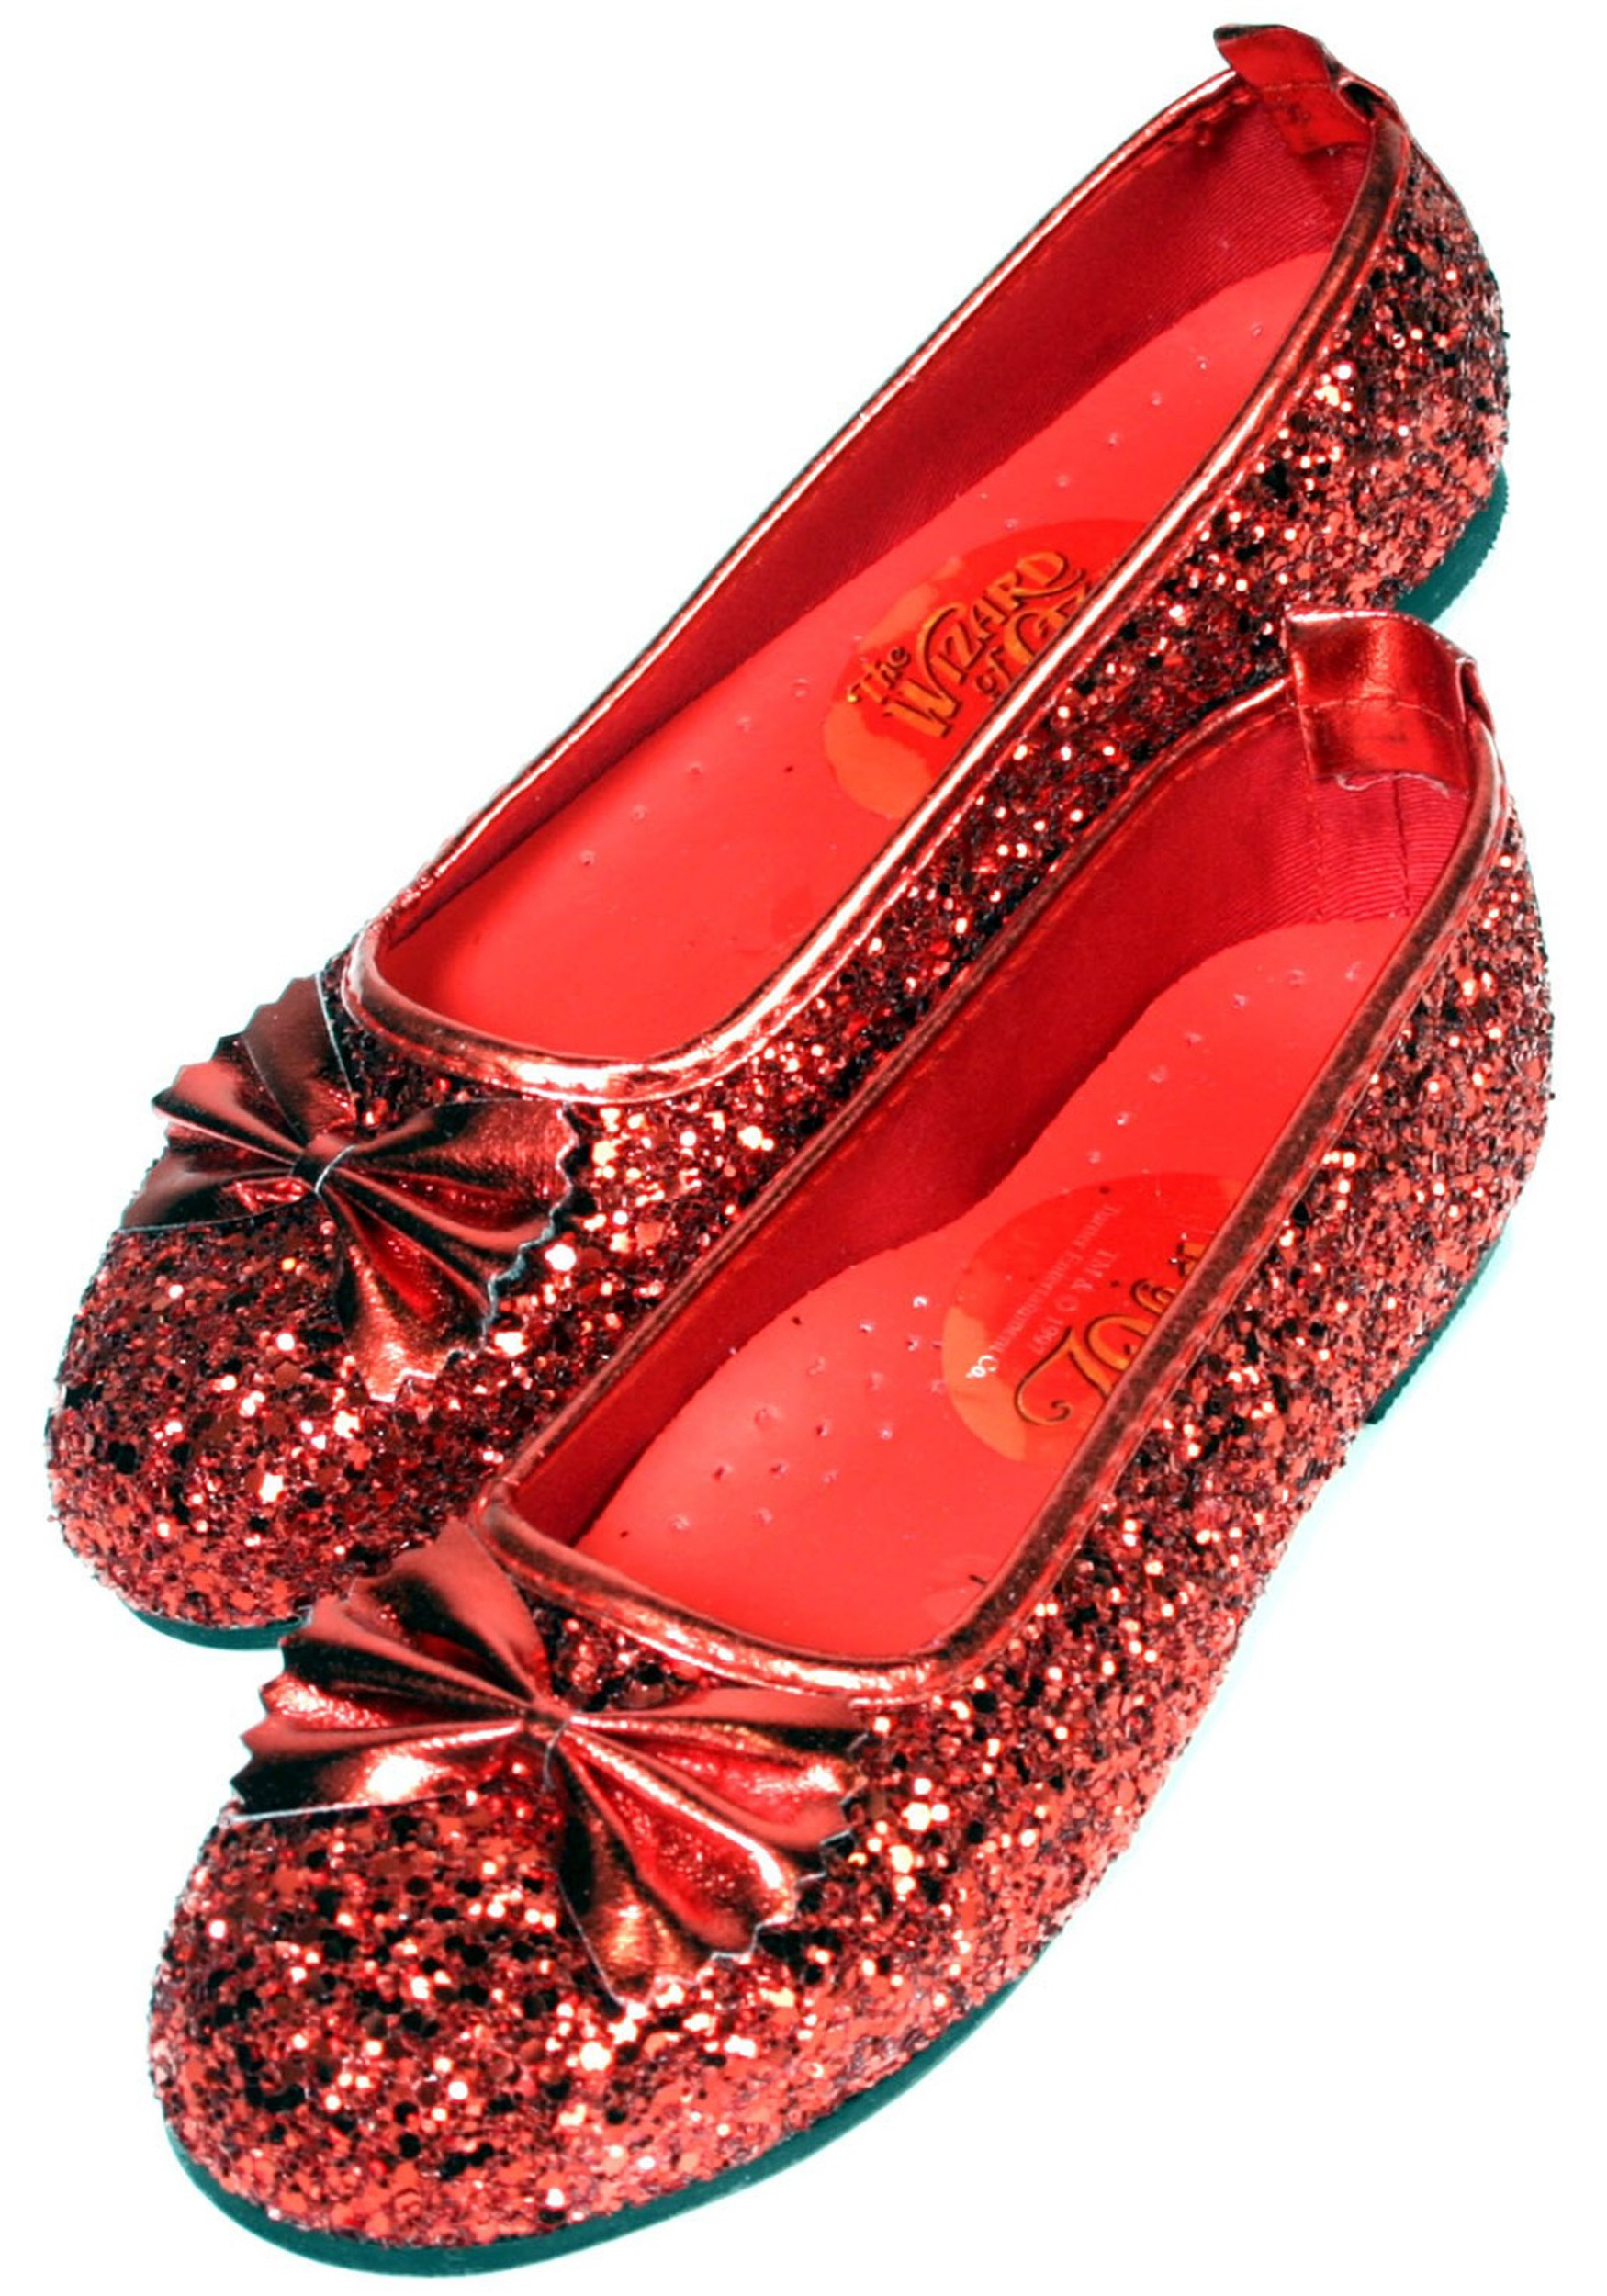 ba9e725106c9 Dorothys Ruby Red Slippers - Dorothy Shoes